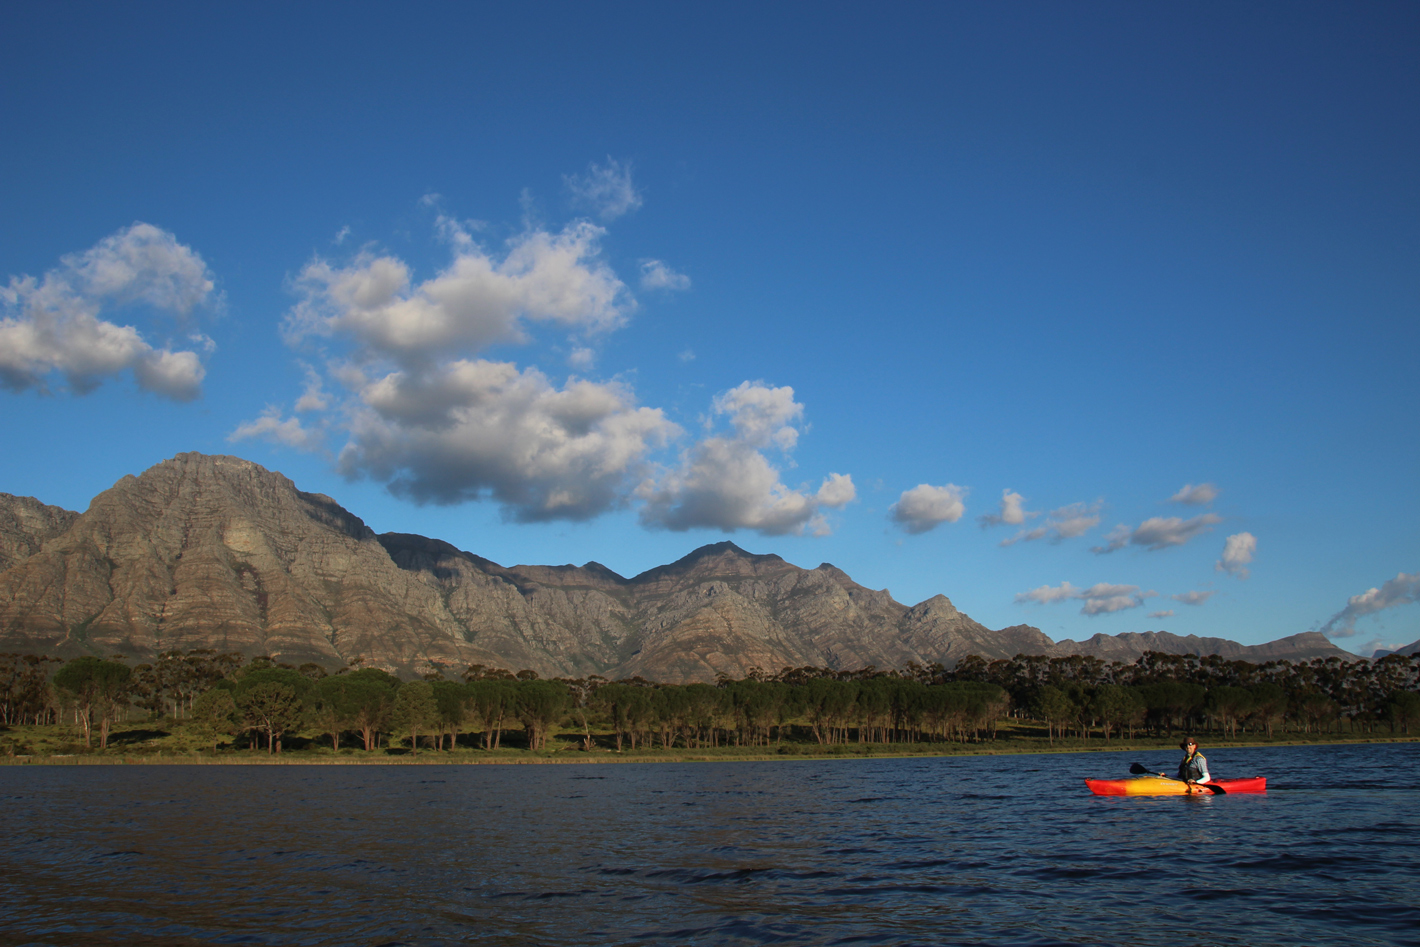 canoeing in South Africa